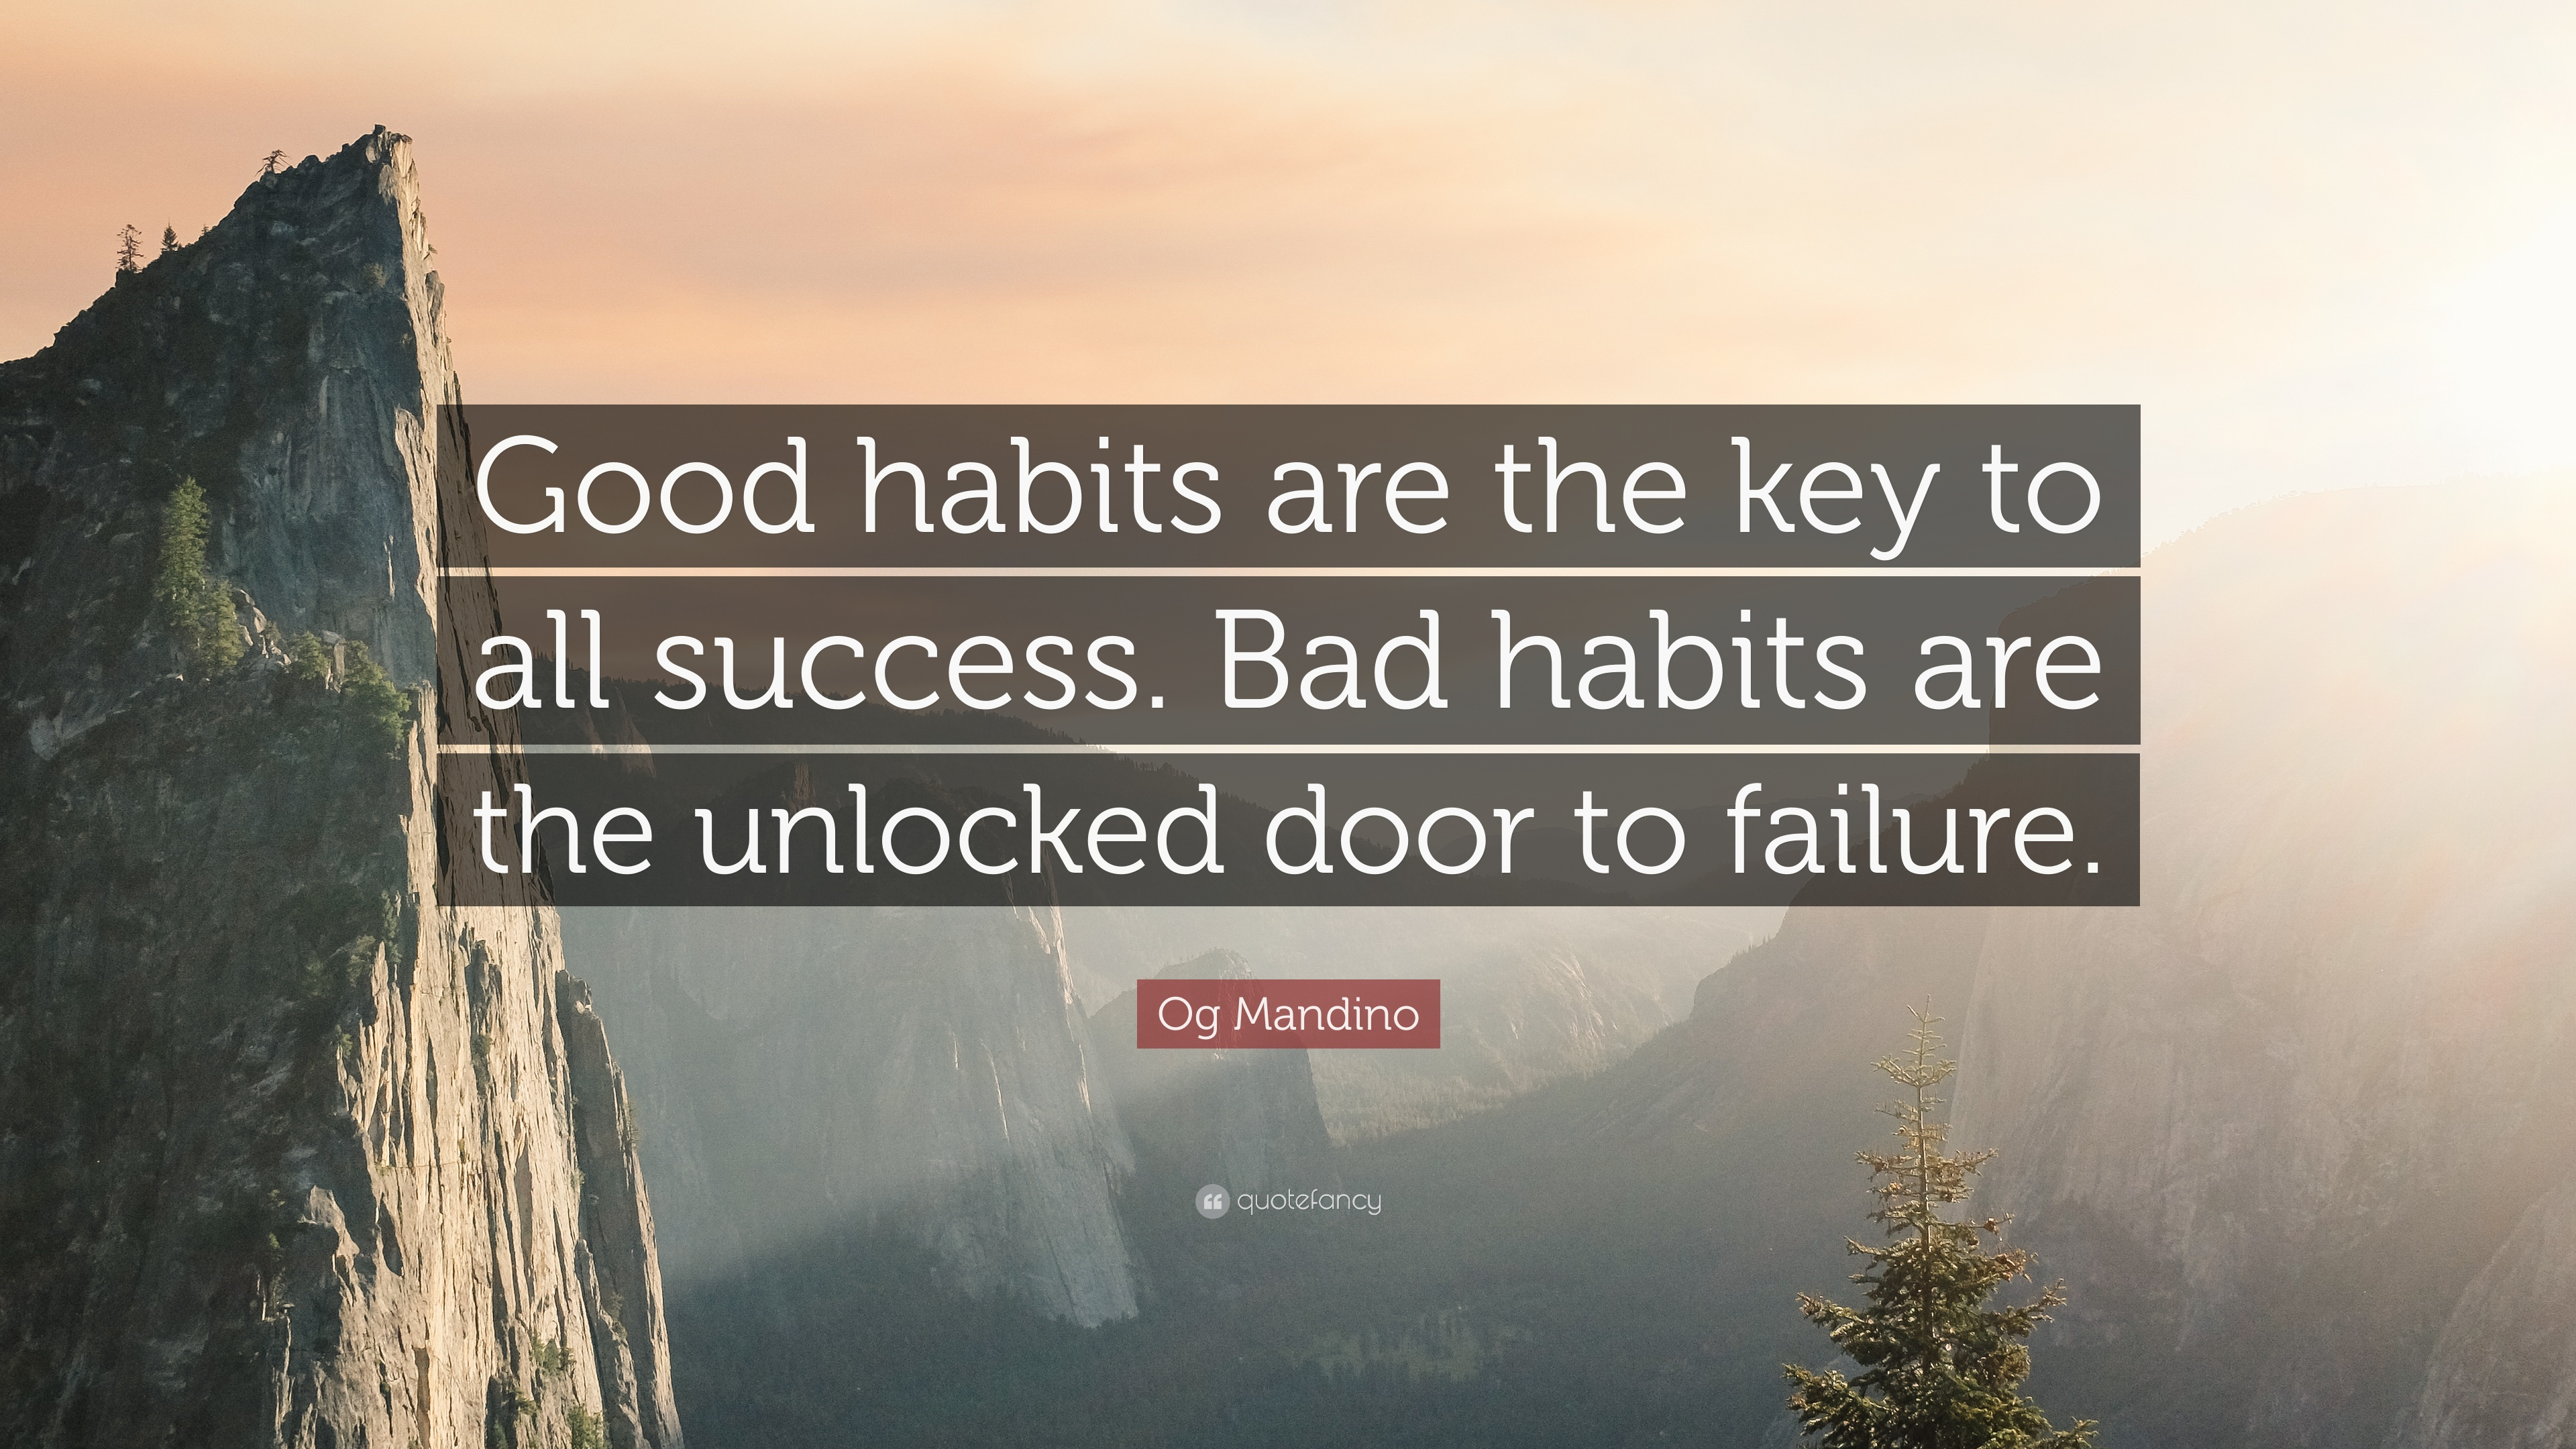 og mandino quote good habits are the key to all success bad og mandino quote good habits are the key to all success bad habits